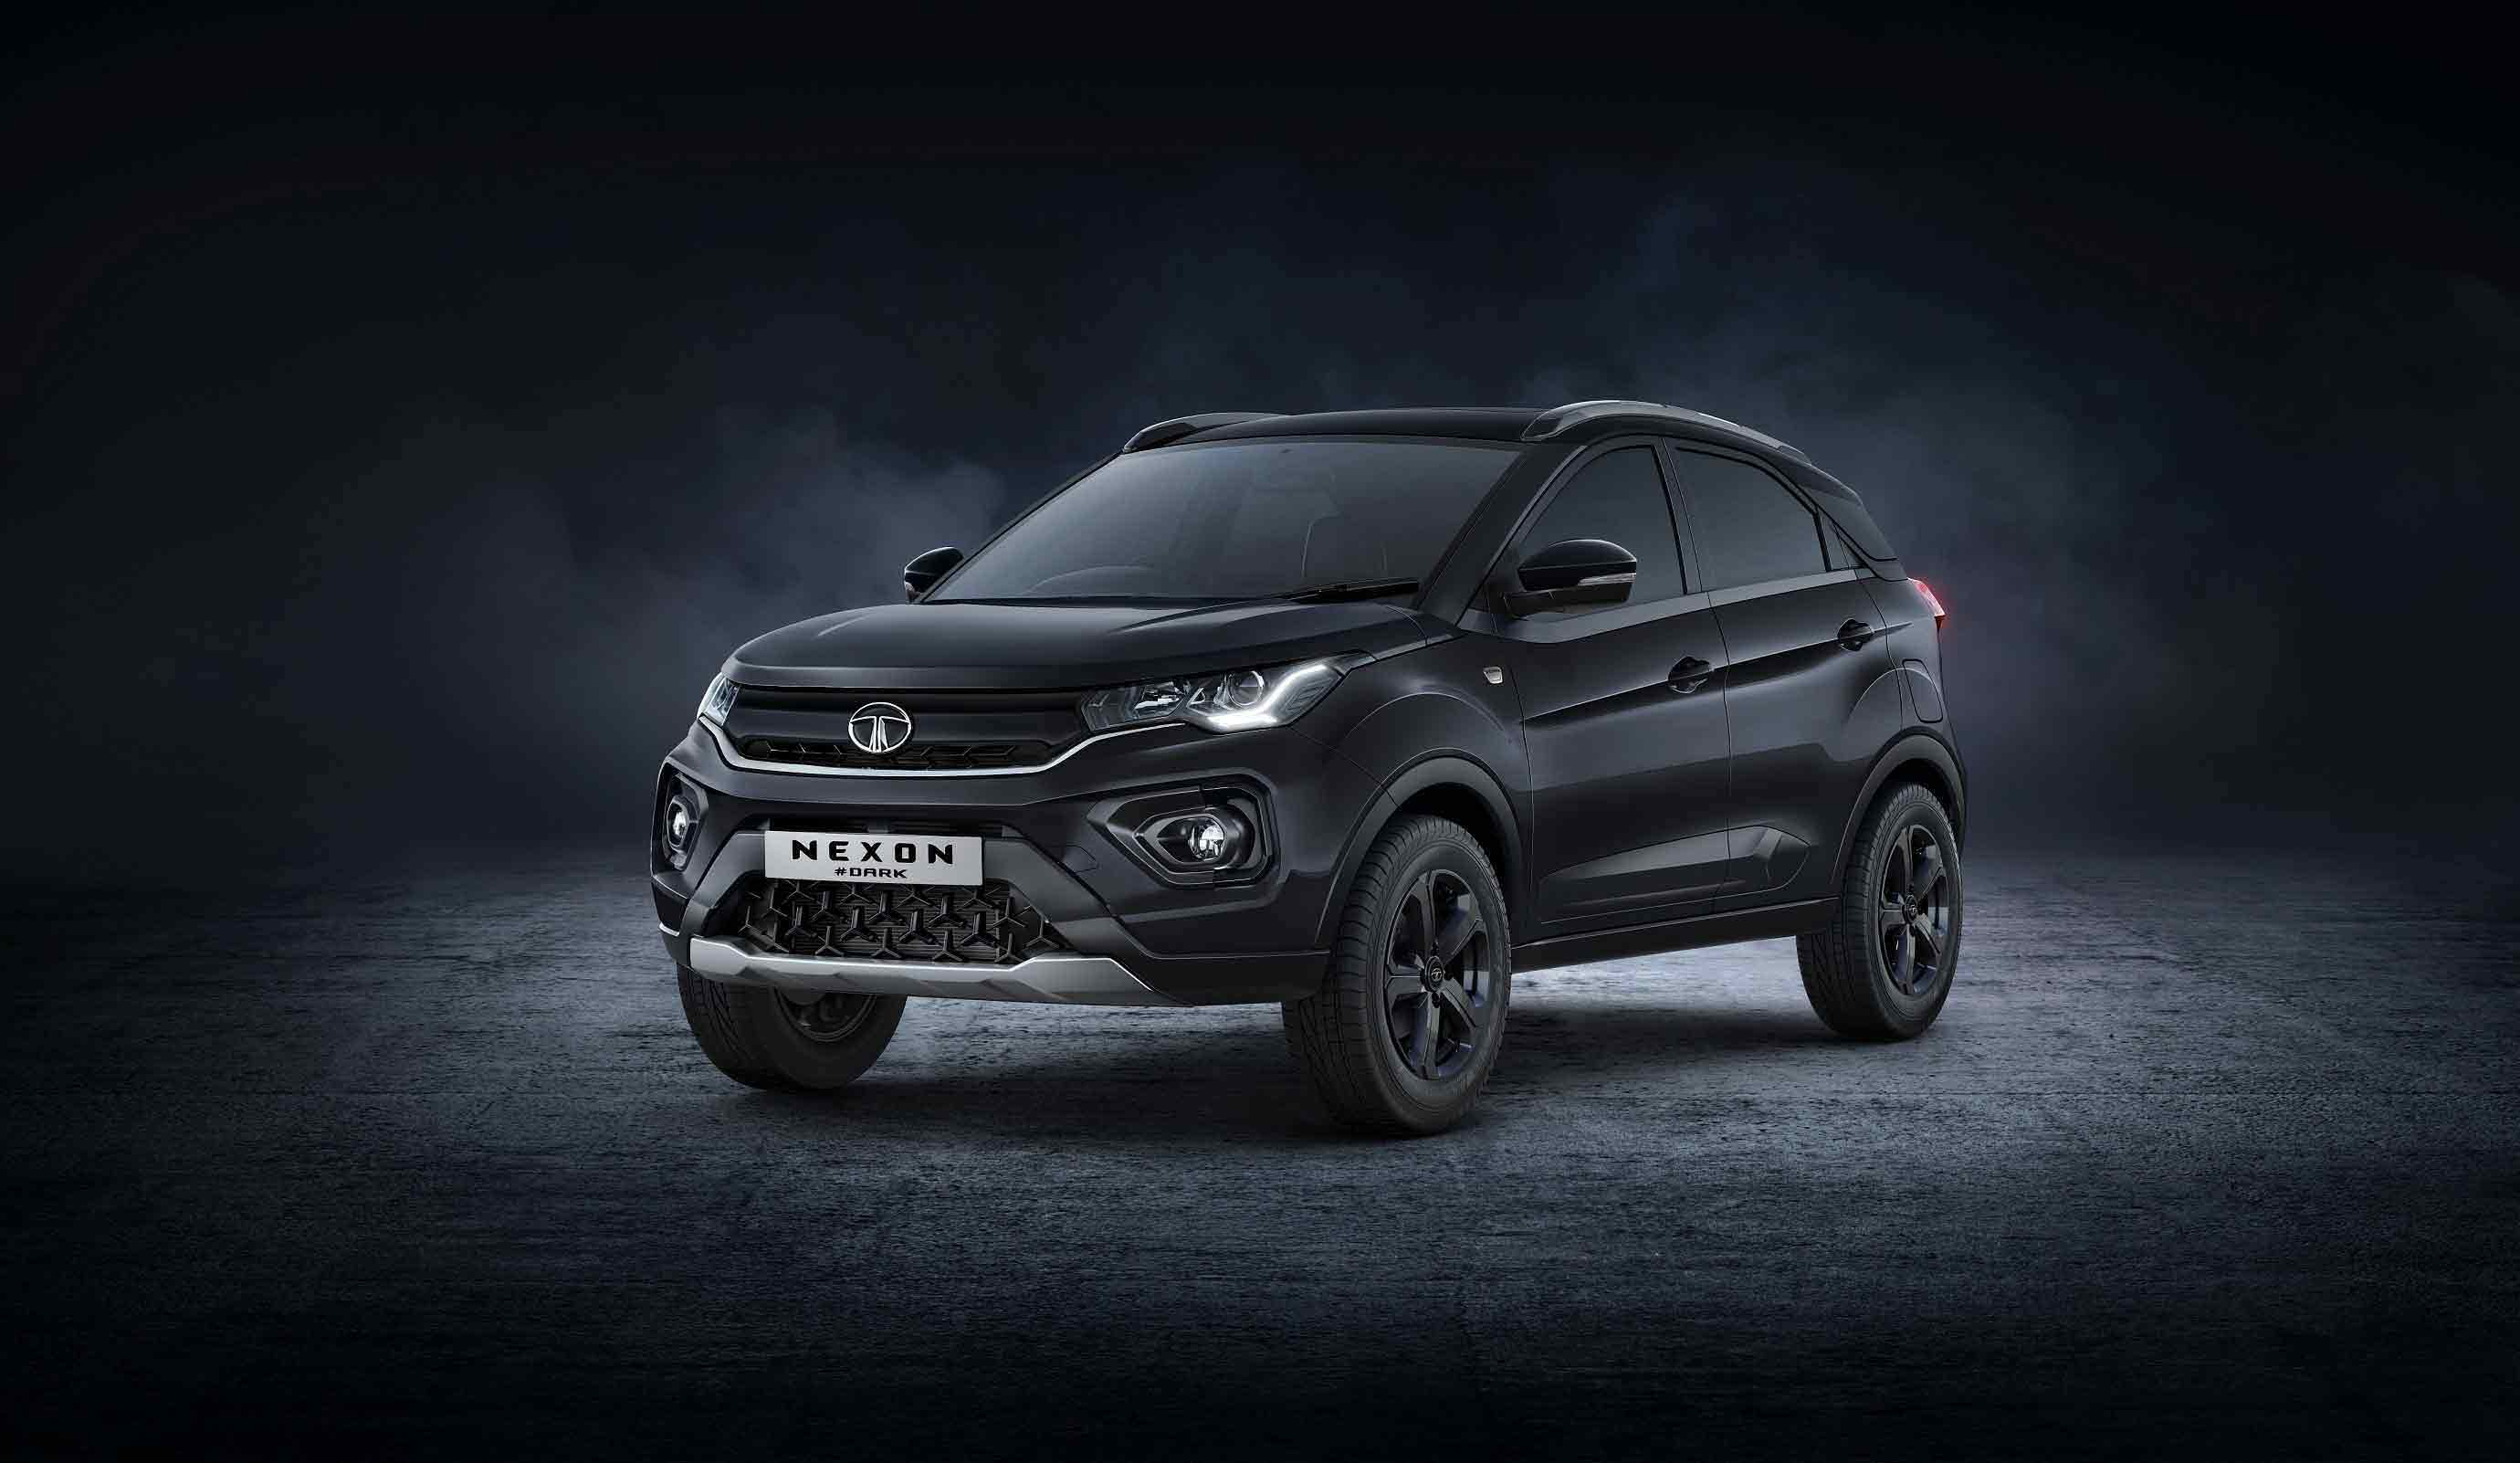 Tata launches dark edition of Nexon, Altroz and Harrier